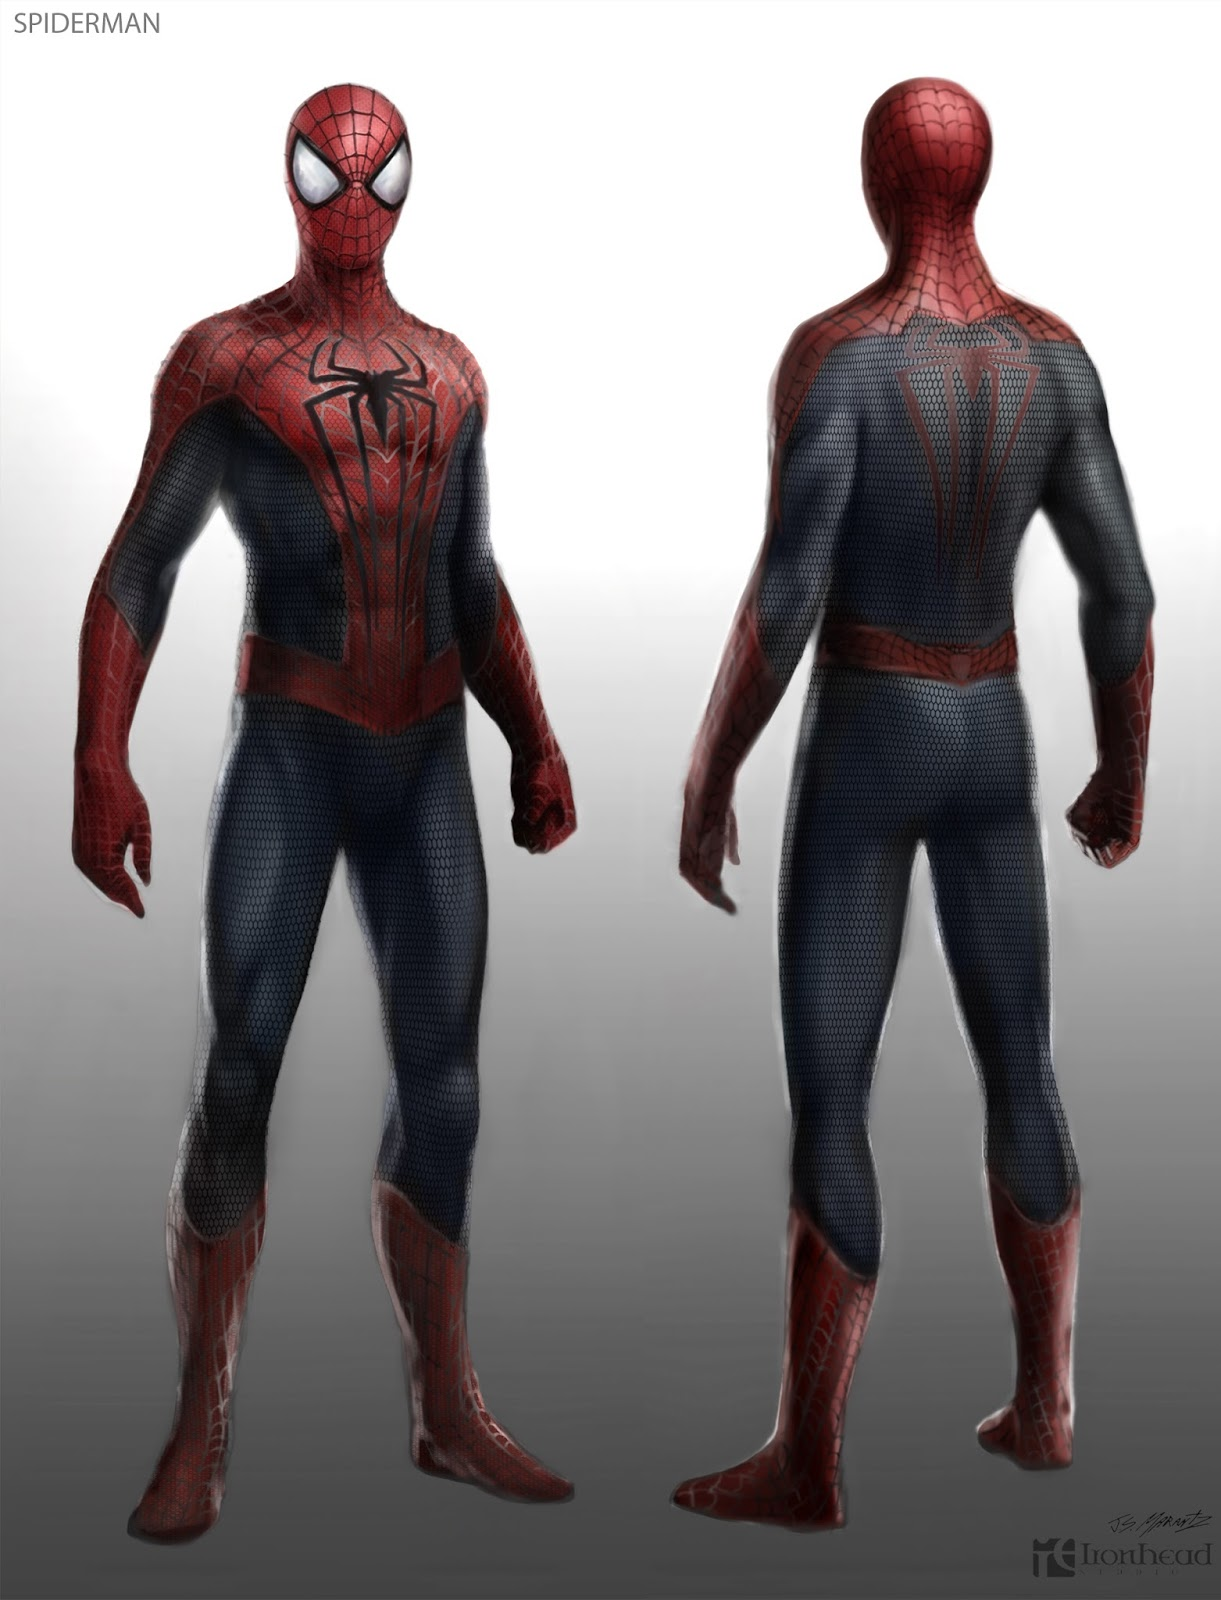 Image - Amazing Spider-Man 2 Concept Art Suit Costume 1 ...